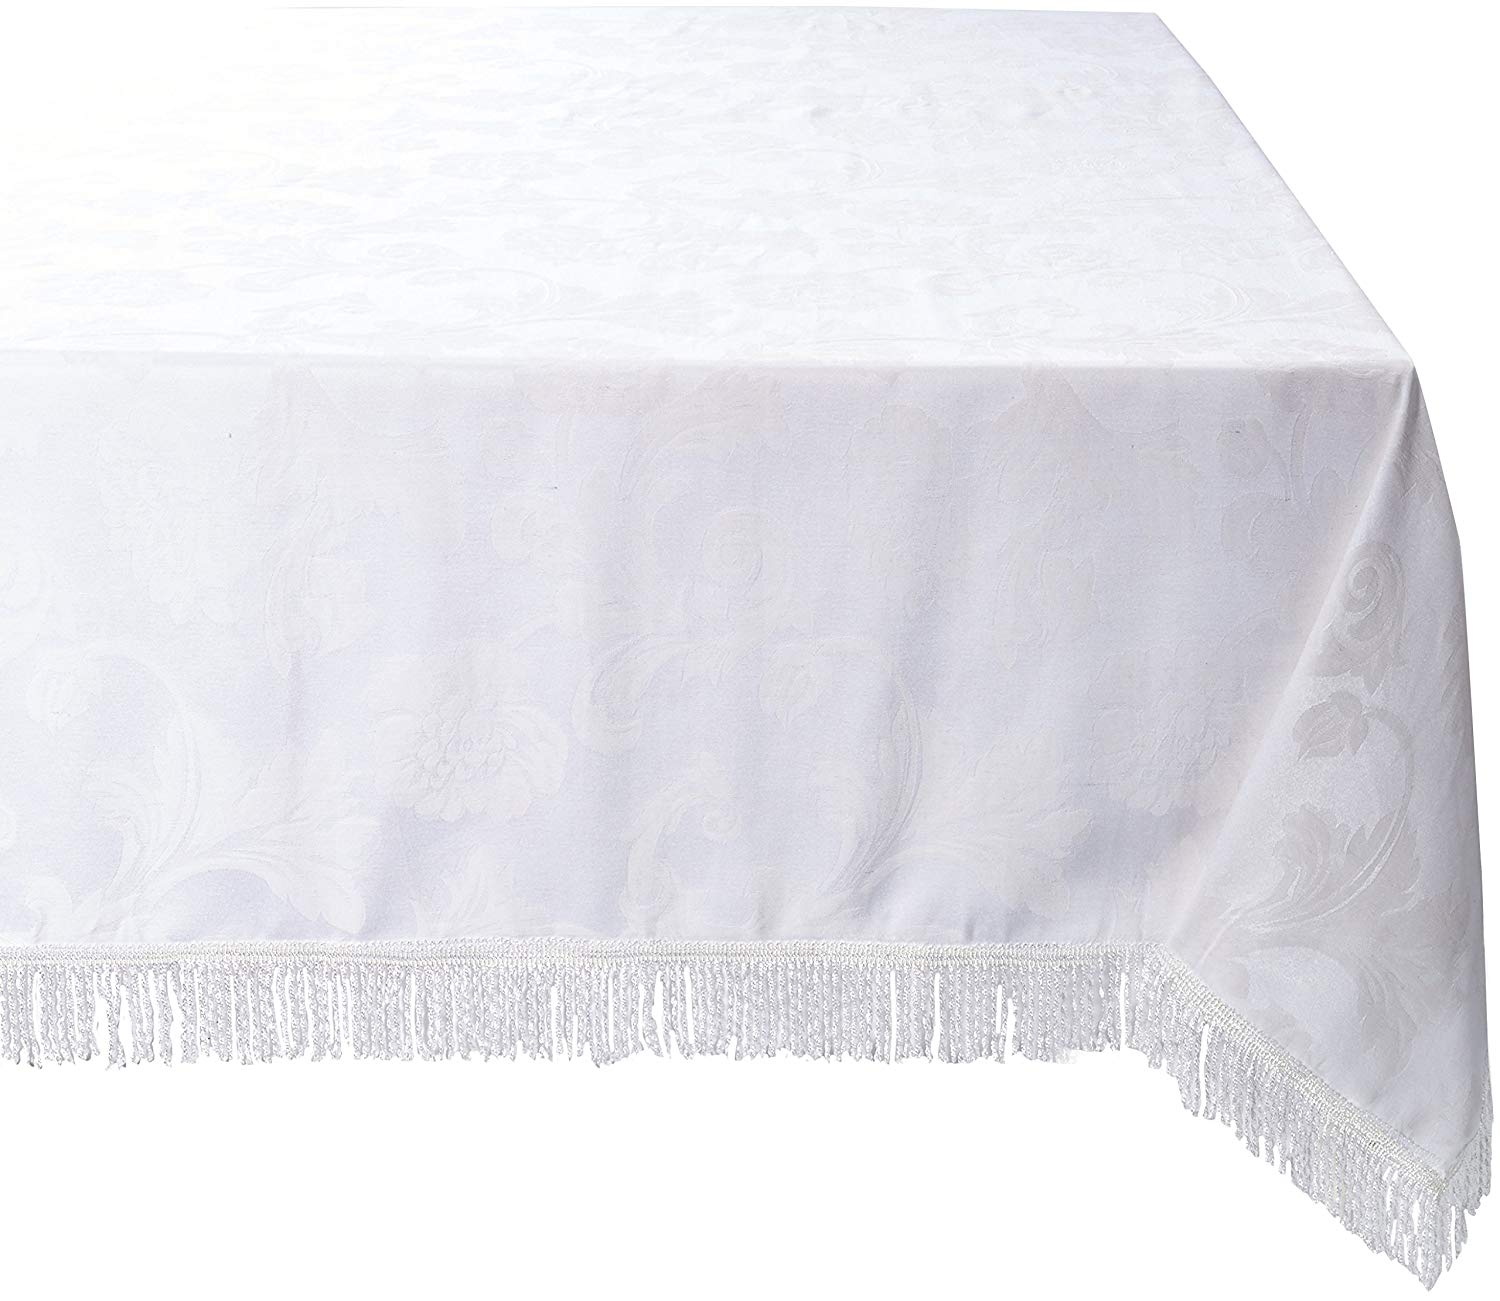 "Violet Linen Classic Damask Design Fringes Oblong/Rectangle Tablecloth, 60"" x 102"", White"